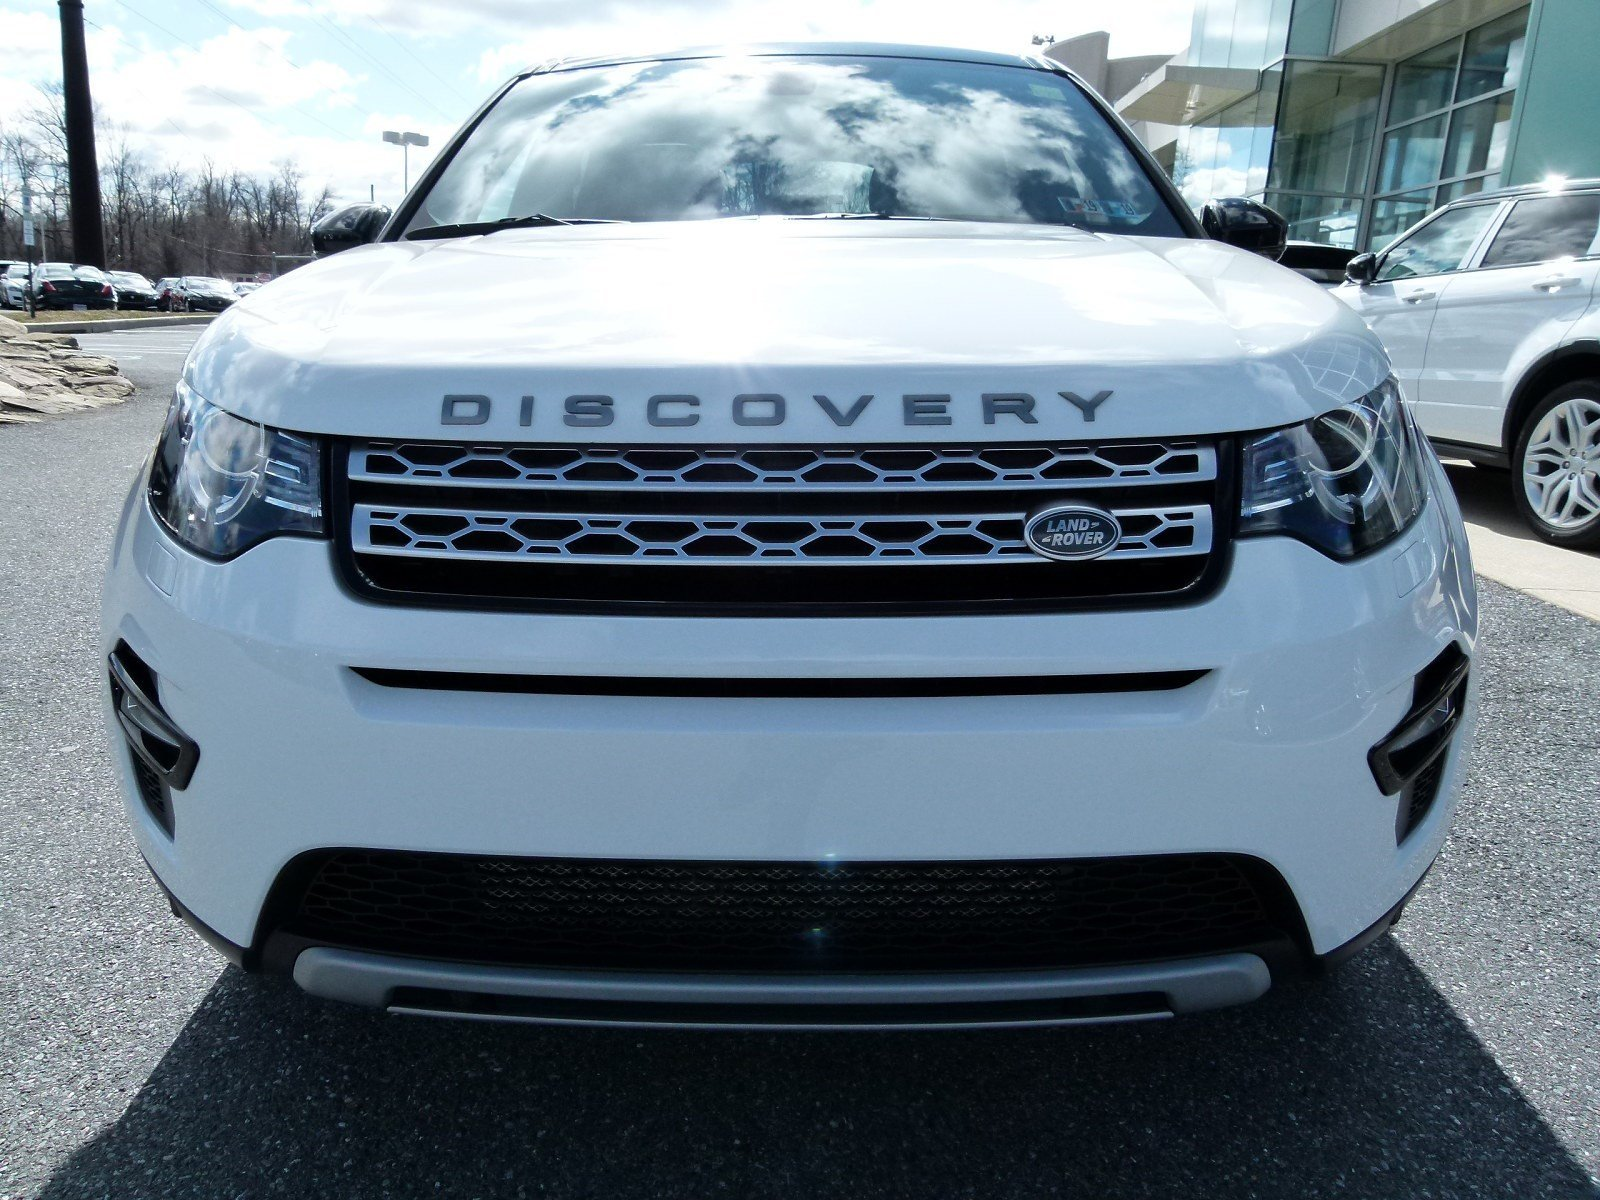 canada leasebusters land hse pioneers en click picture s landrover discovery gallery lease asp bigger see rover to research takeover